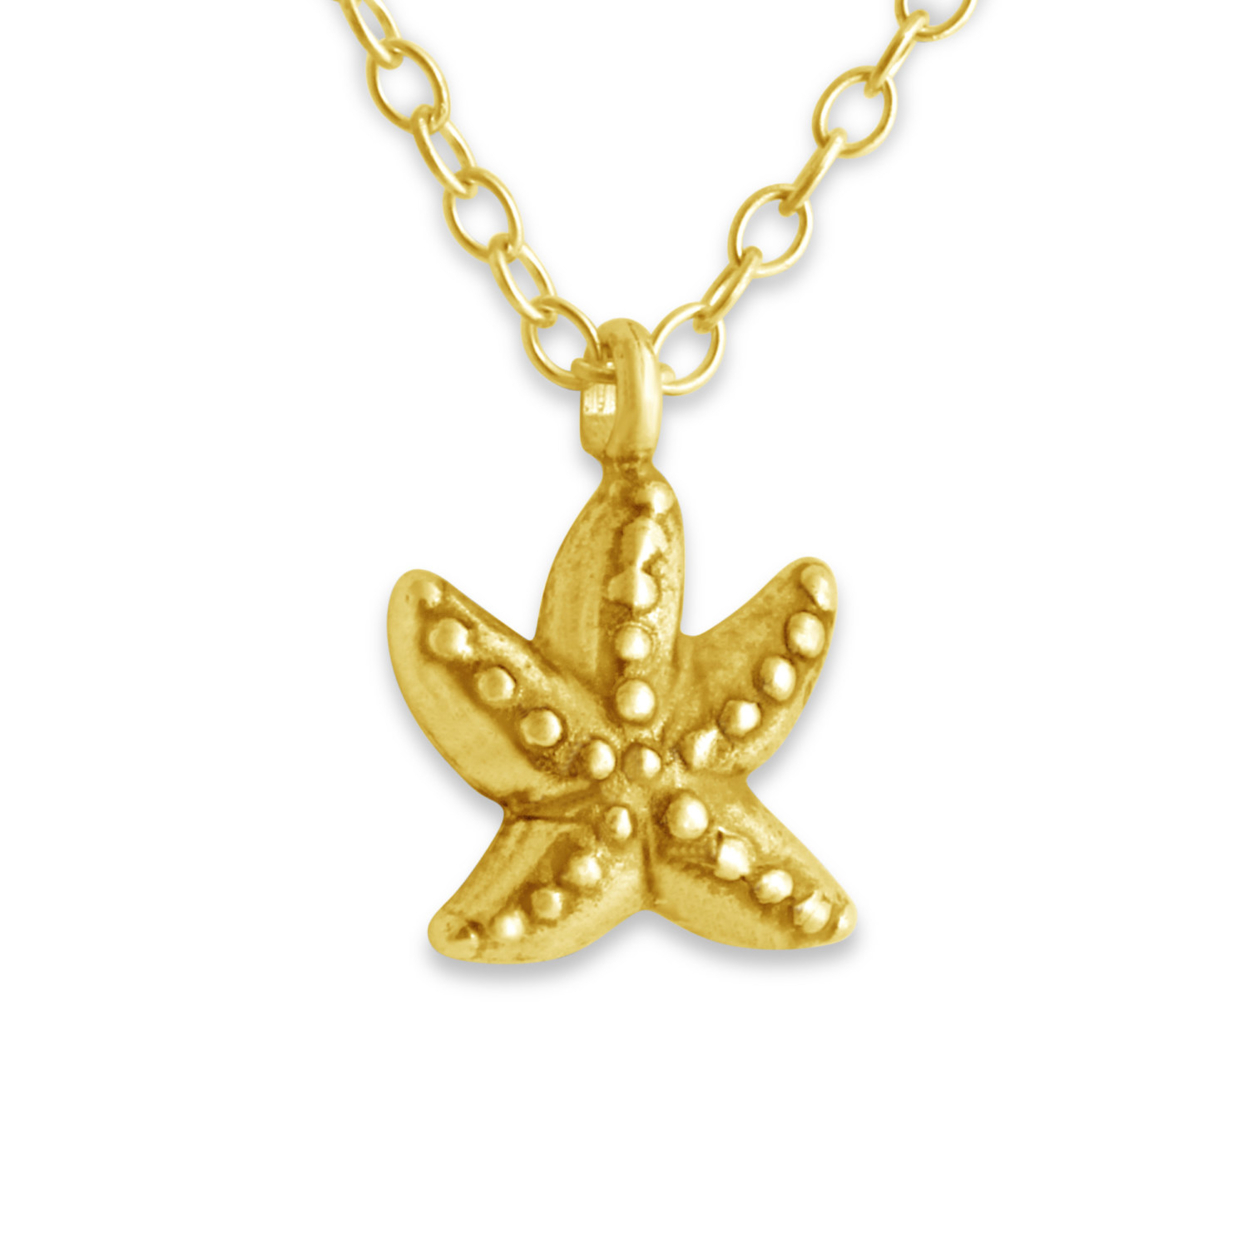 Starfish Sea Star Marine Animal Symbol Of Love Double Sided Charm Pendant Necklace #14k Gold Plated Over 925 Sterling Silver #azaggi N0079g 12 Child